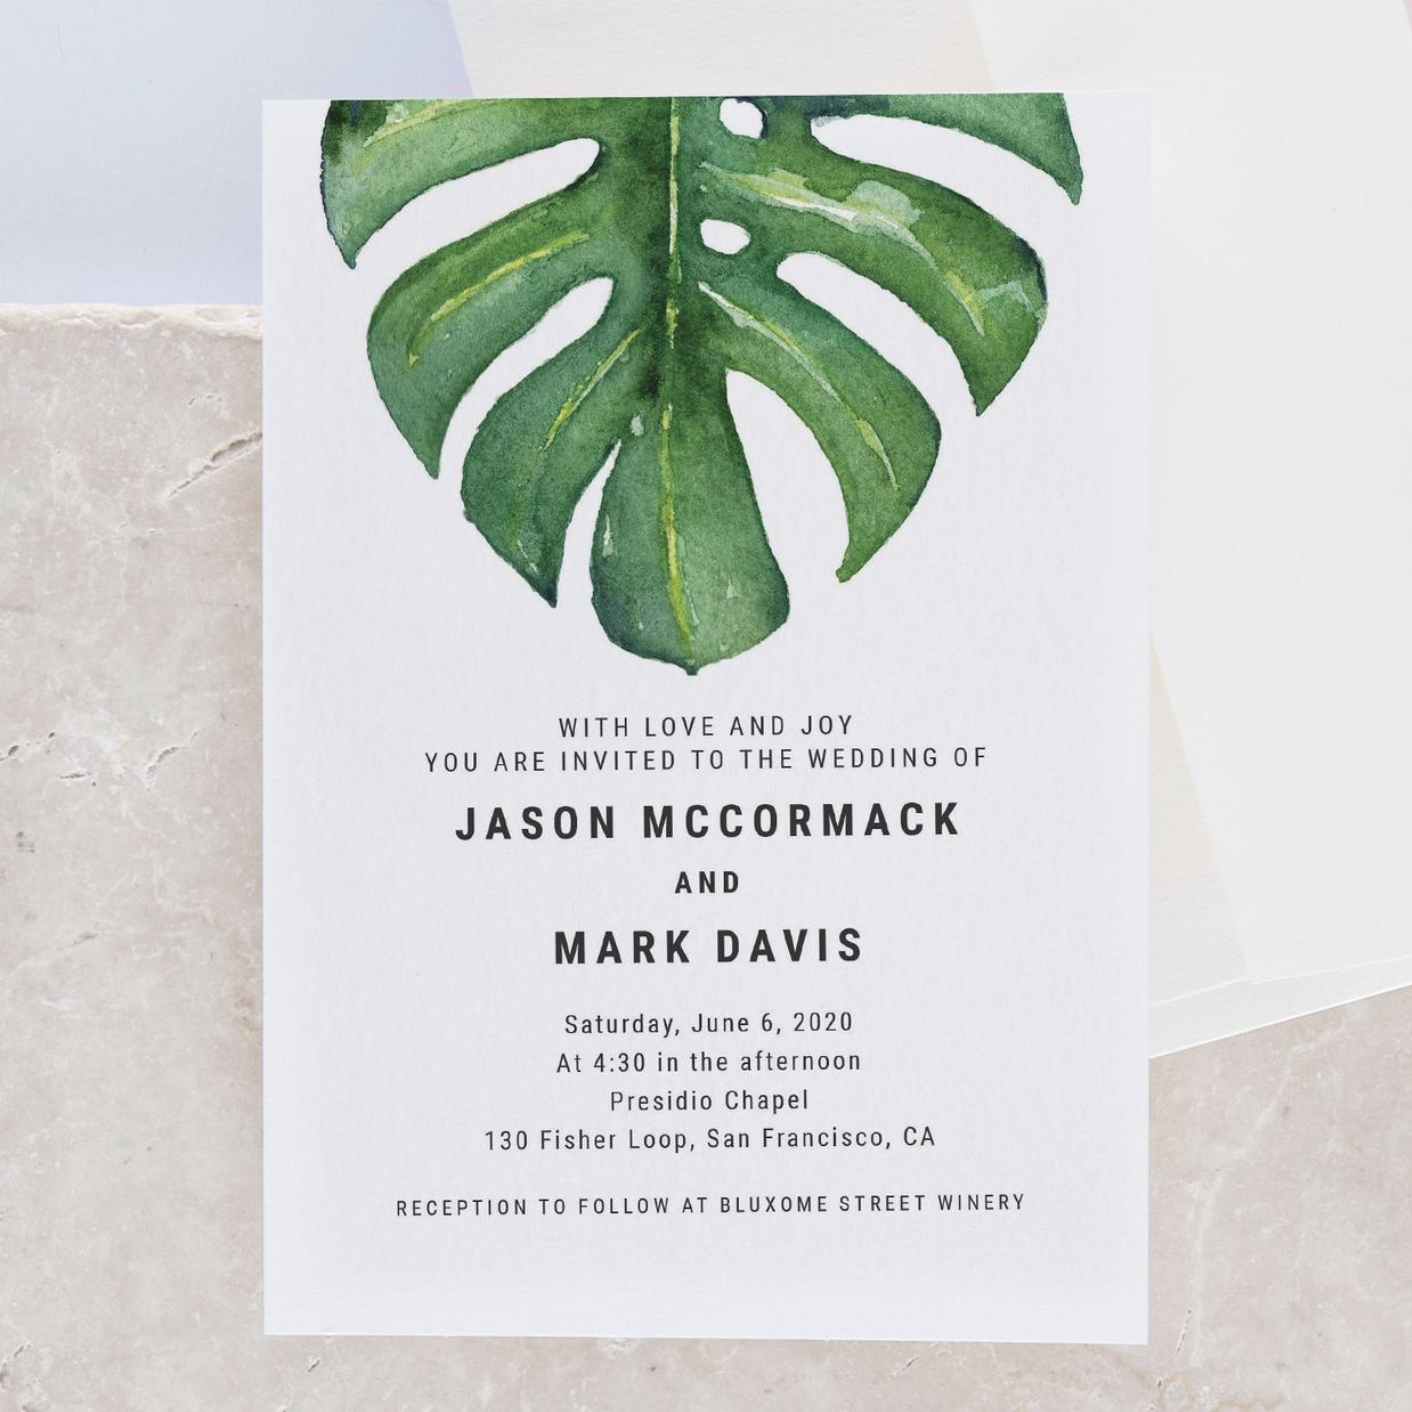 Photo from Zola's printed wedding invitation and save-the-date collection